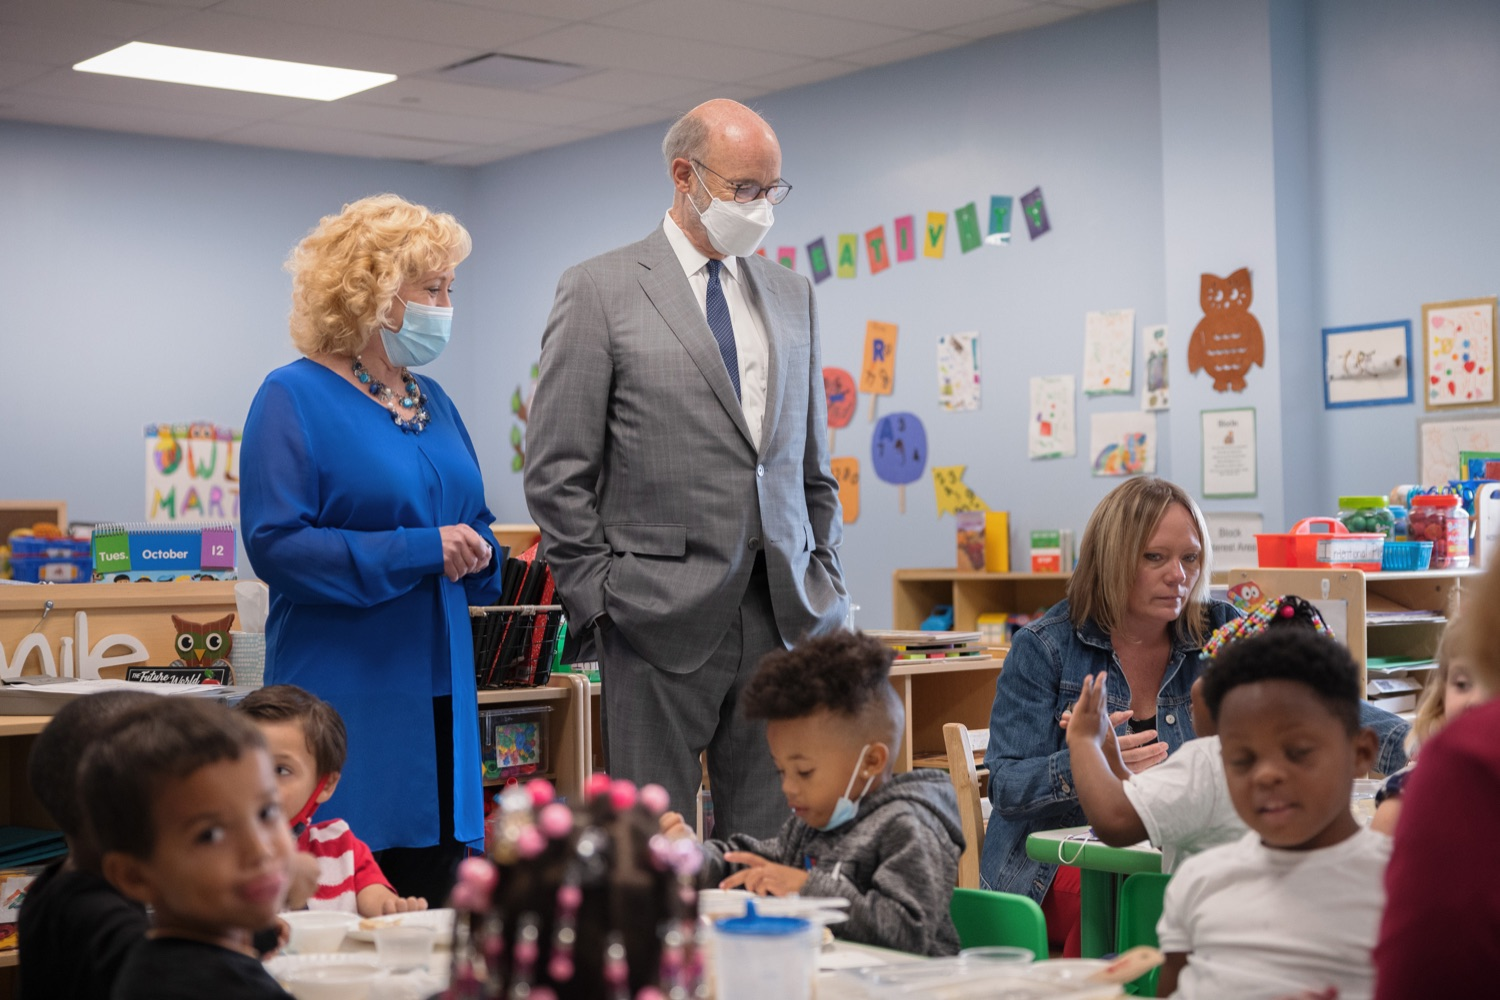 """<a href=""""https://filesource.wostreaming.net/commonwealthofpa/photo/20139_gov_childcare_dz_031.jpg"""" target=""""_blank"""">⇣Download Photo<br></a>Pennsylvania Governor Tom Wolf and Rina Irwin, CEO, Child Development Centers taking a tour of the Gilson Child Development Center.  Governor Tom Wolf today visited Gilson Child Development Center in Erie to celebrate the $30 million increase in state funding to expand early childhood learning to more than 3,200 additional young children and the $655 million available in federal funding to stabilize childcare providers during the pandemic.  Erie, PA  October 12, 2021"""